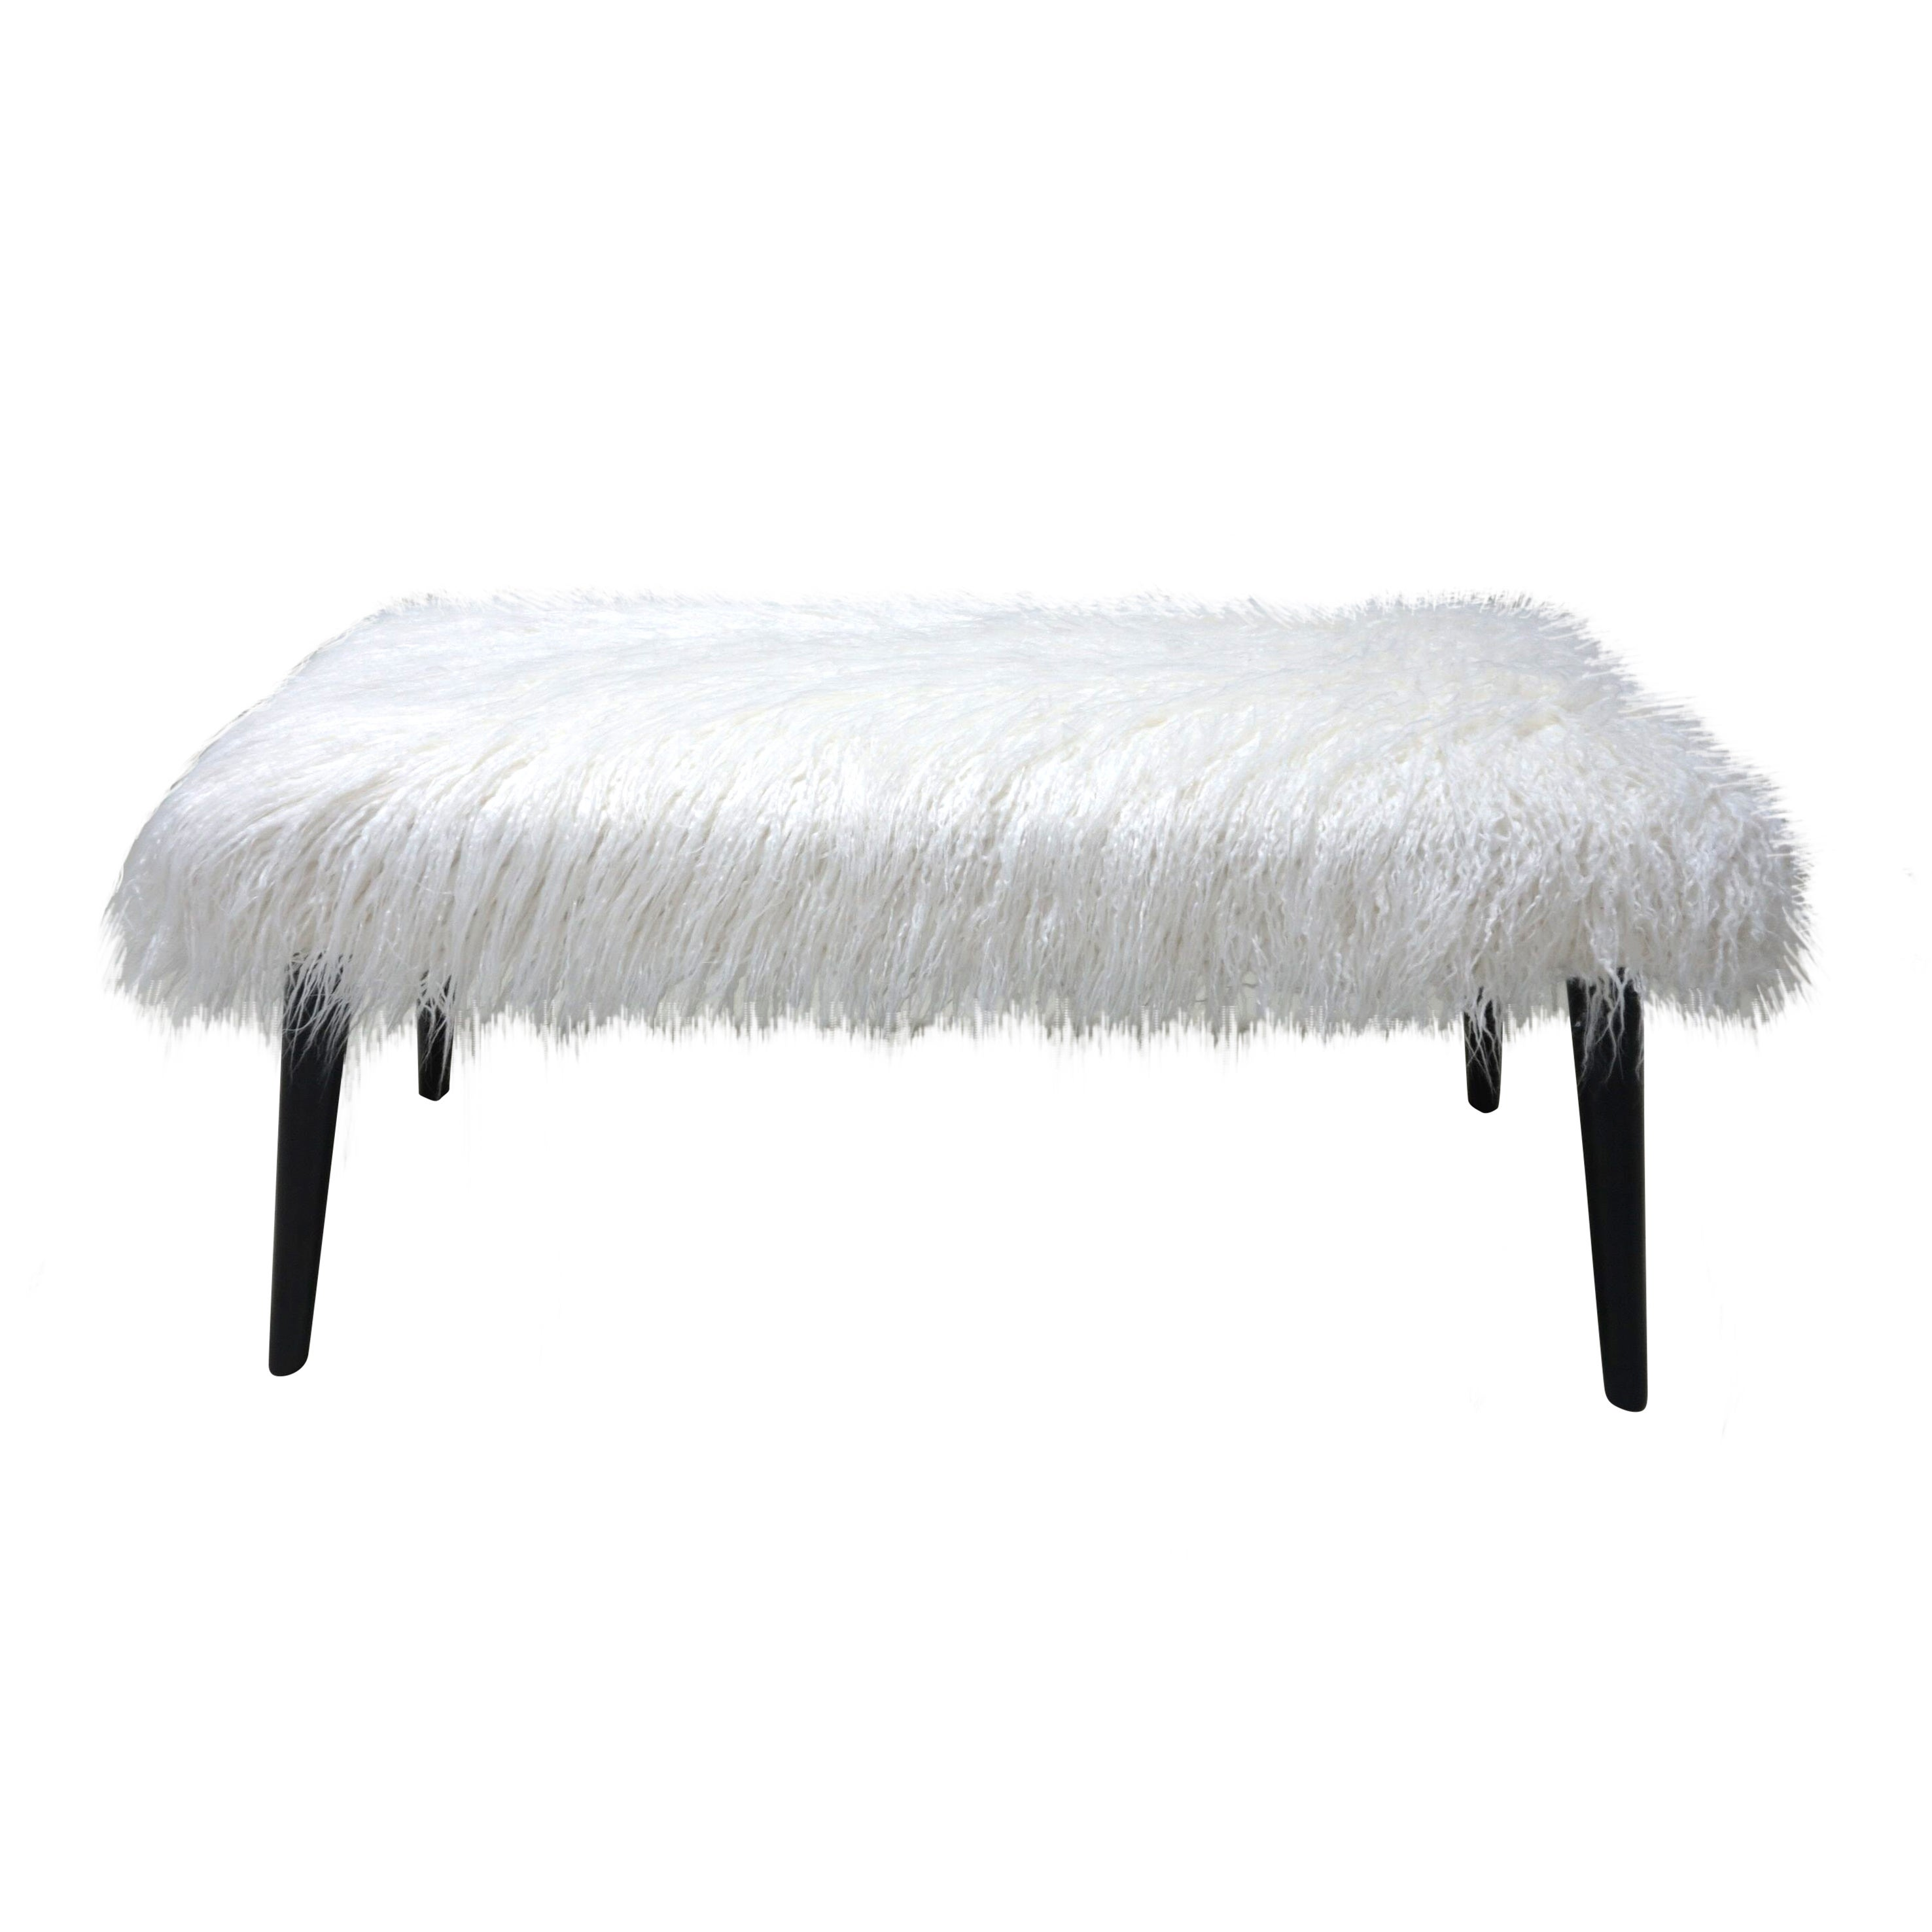 Groovy White Faux Fur Bench With Black Legs Squirreltailoven Fun Painted Chair Ideas Images Squirreltailovenorg